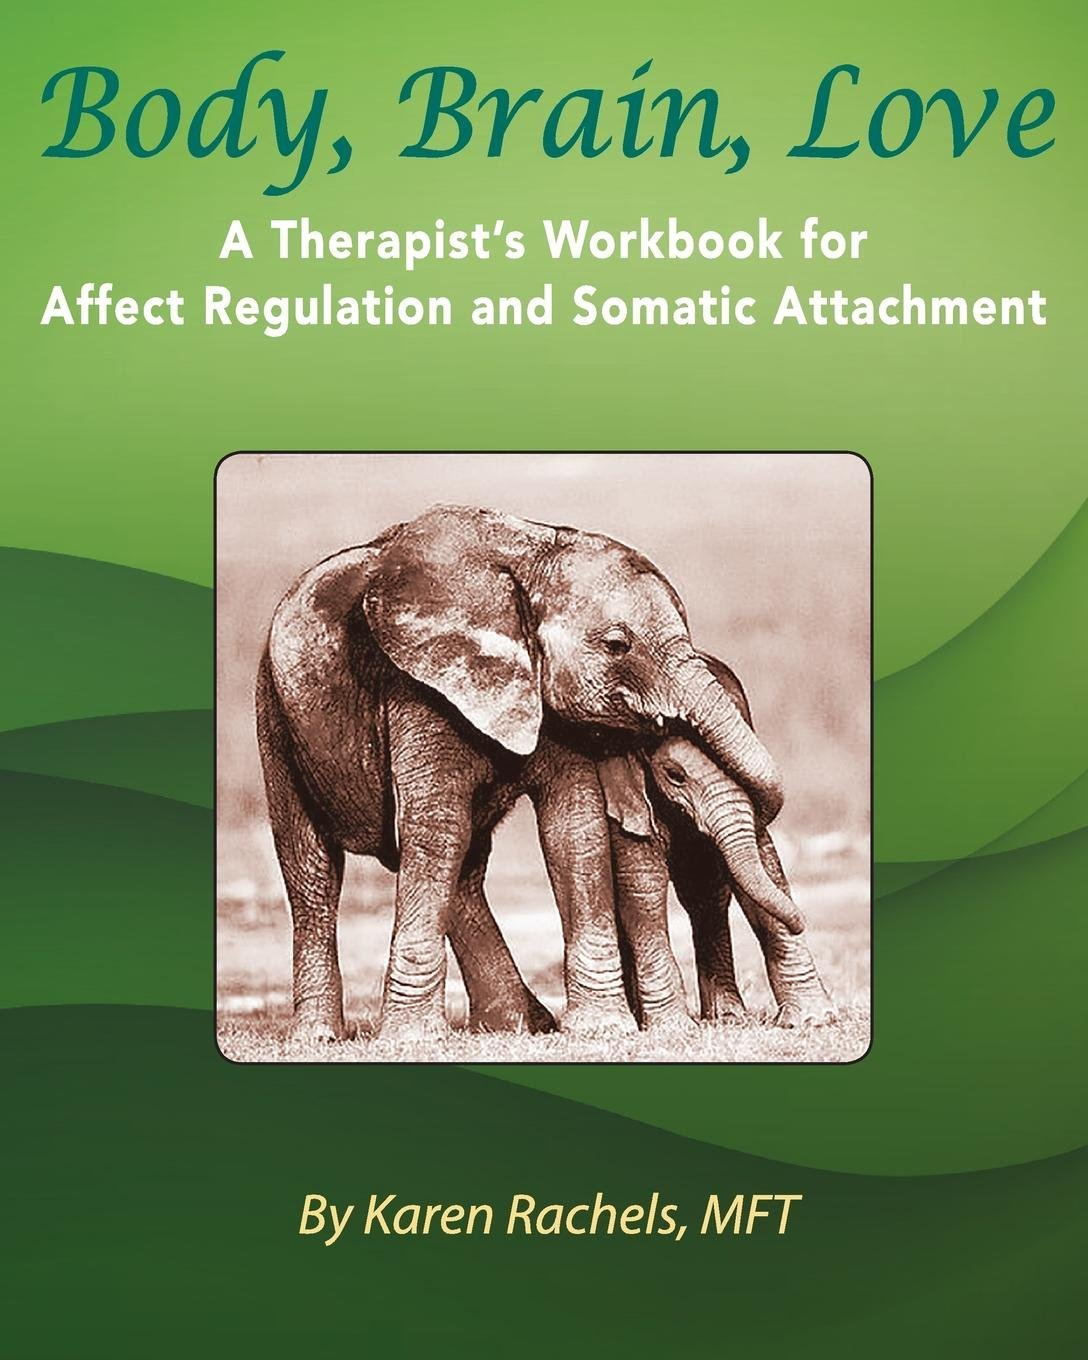 Body, Brain, Love: A Therapist's Workbook for Affect Regulation and Somatic Attachment PDF